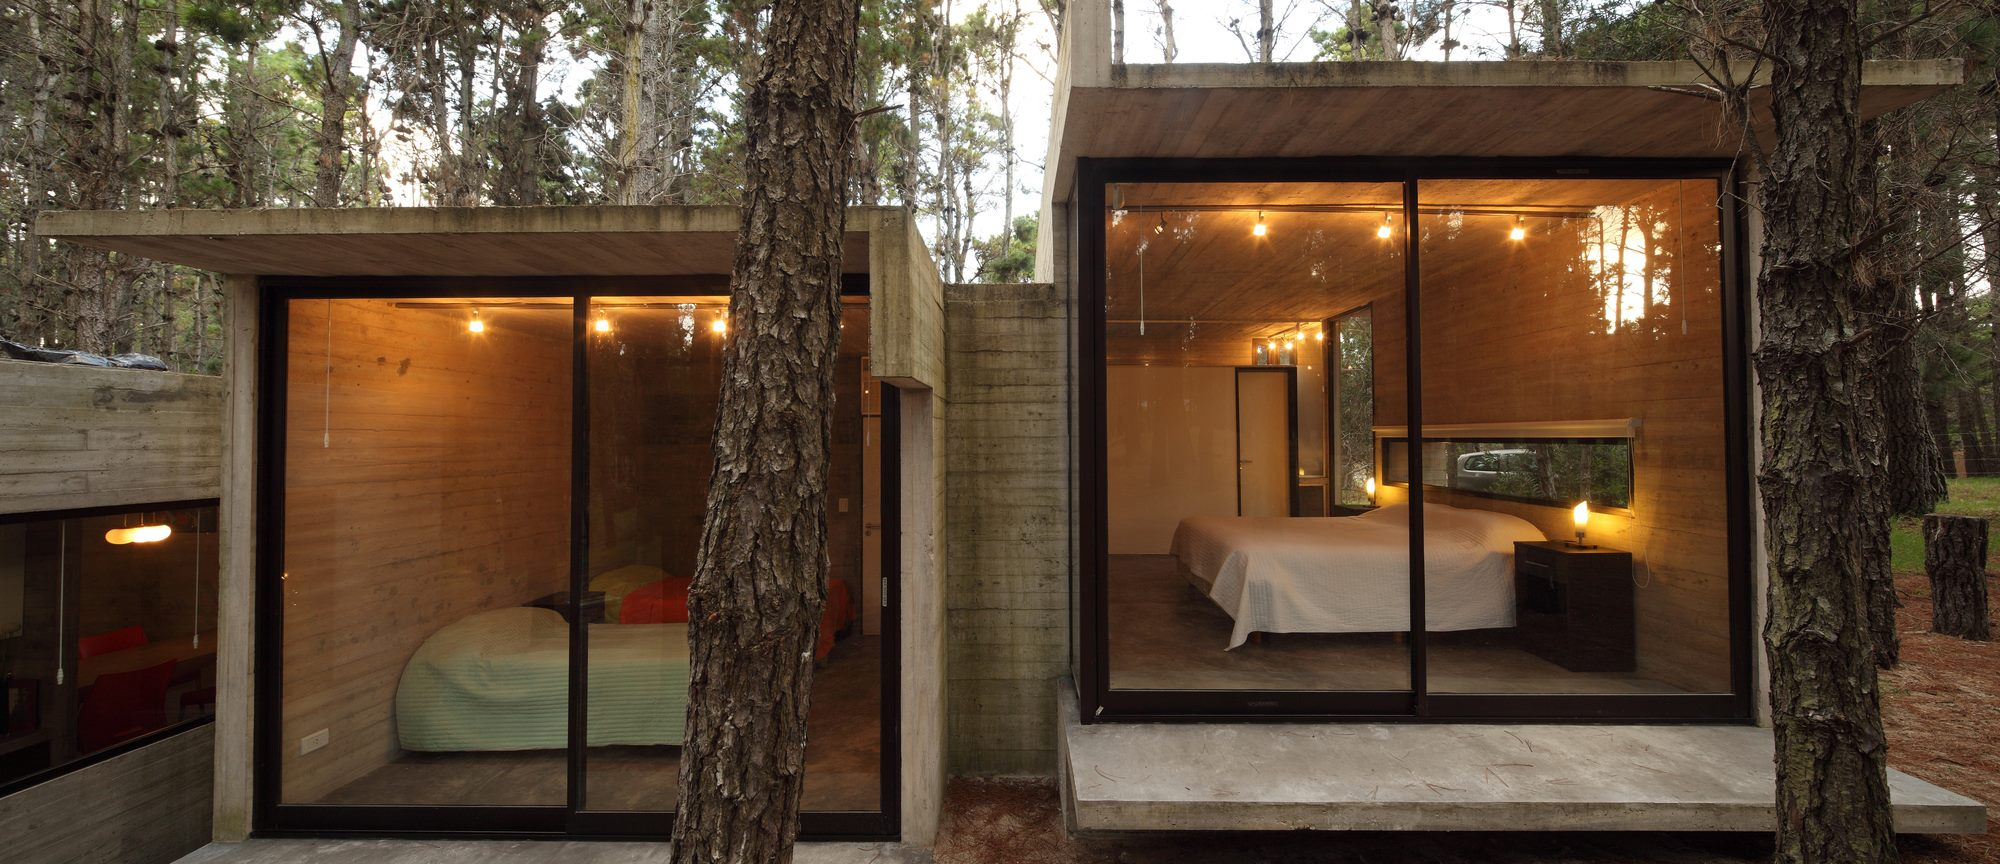 Tiny House With Porch Maf Maquinaria Vivir En El Bosque Arquitectura